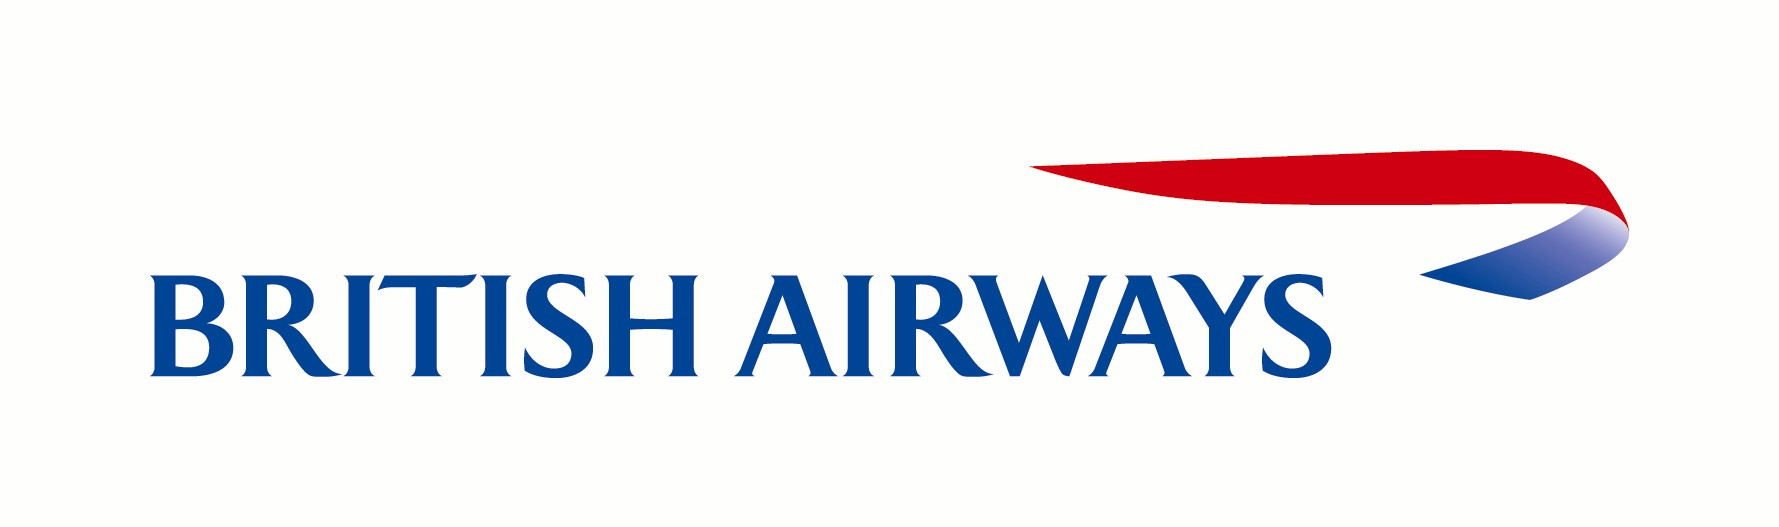 British Airways Edinburgh EDI service - luxury chauffeur transfers to Edinburgh